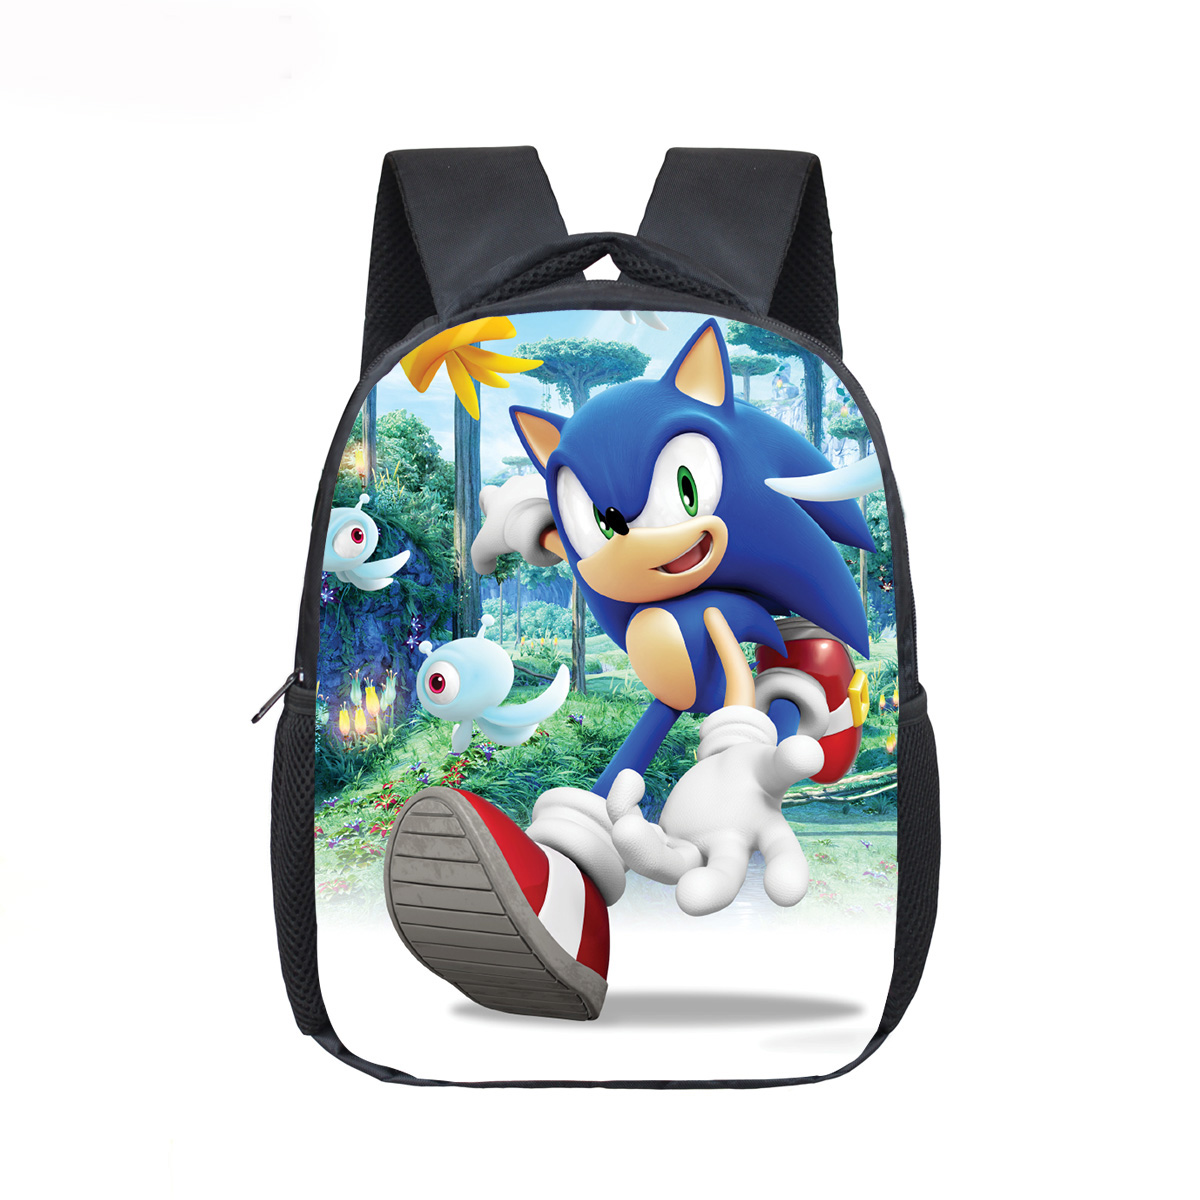 12 Inch Mario Bros Sonic Boom Hedgehogs Kindergarten School Bags Bookbags Children Baby Toddler Bag Kids Backpack